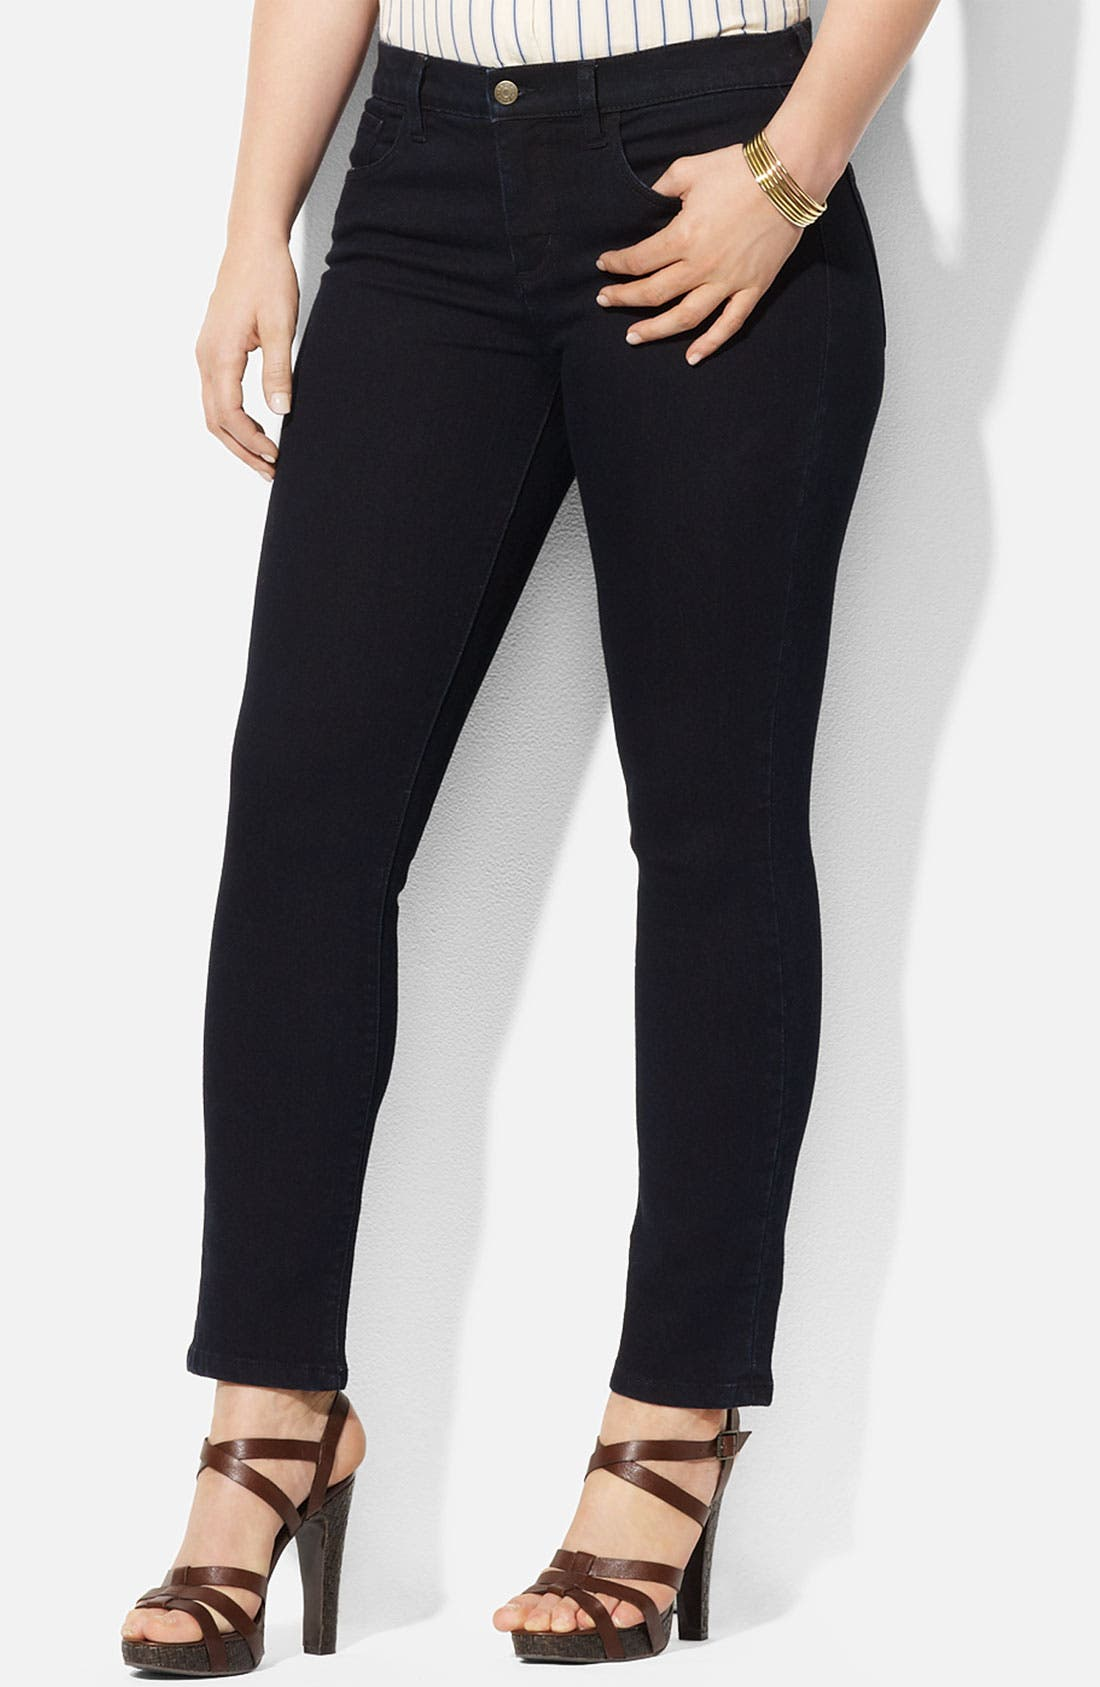 Alternate Image 1 Selected - Lauren Ralph Lauren Straight Leg Ankle Pants (Plus)